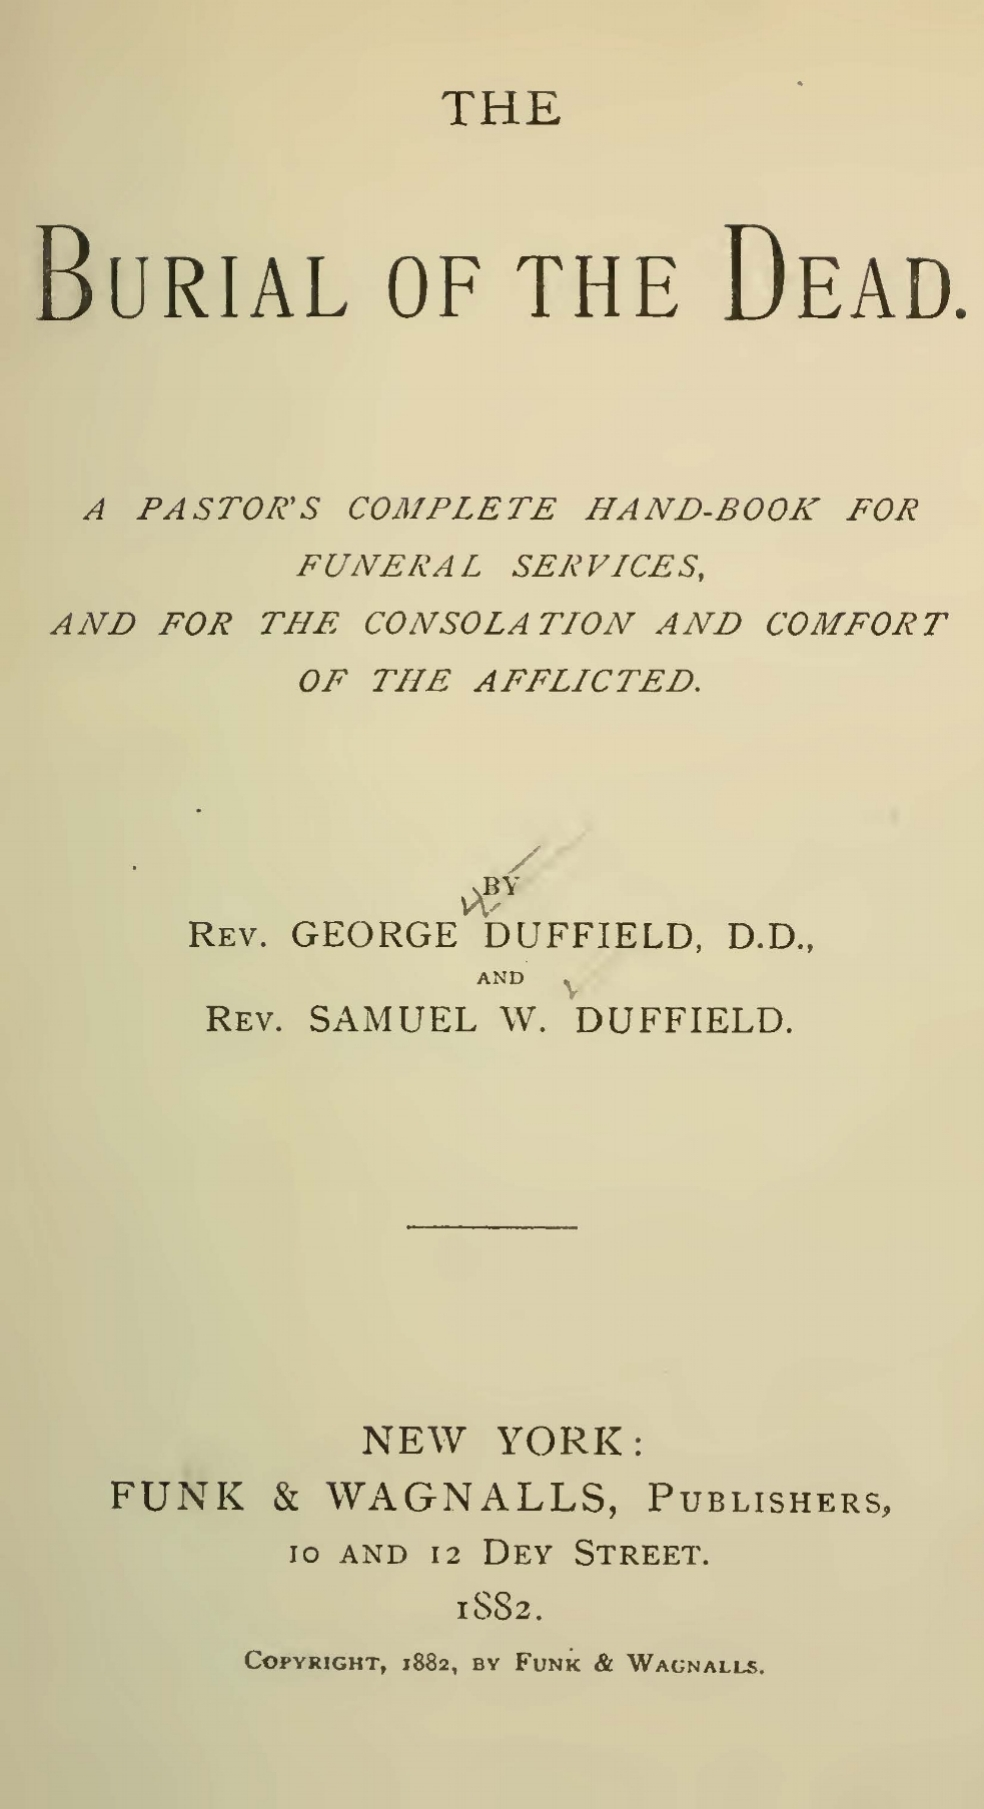 Duffield, Samuel Willoughby, The Burial of the Dead Title Page.jpg